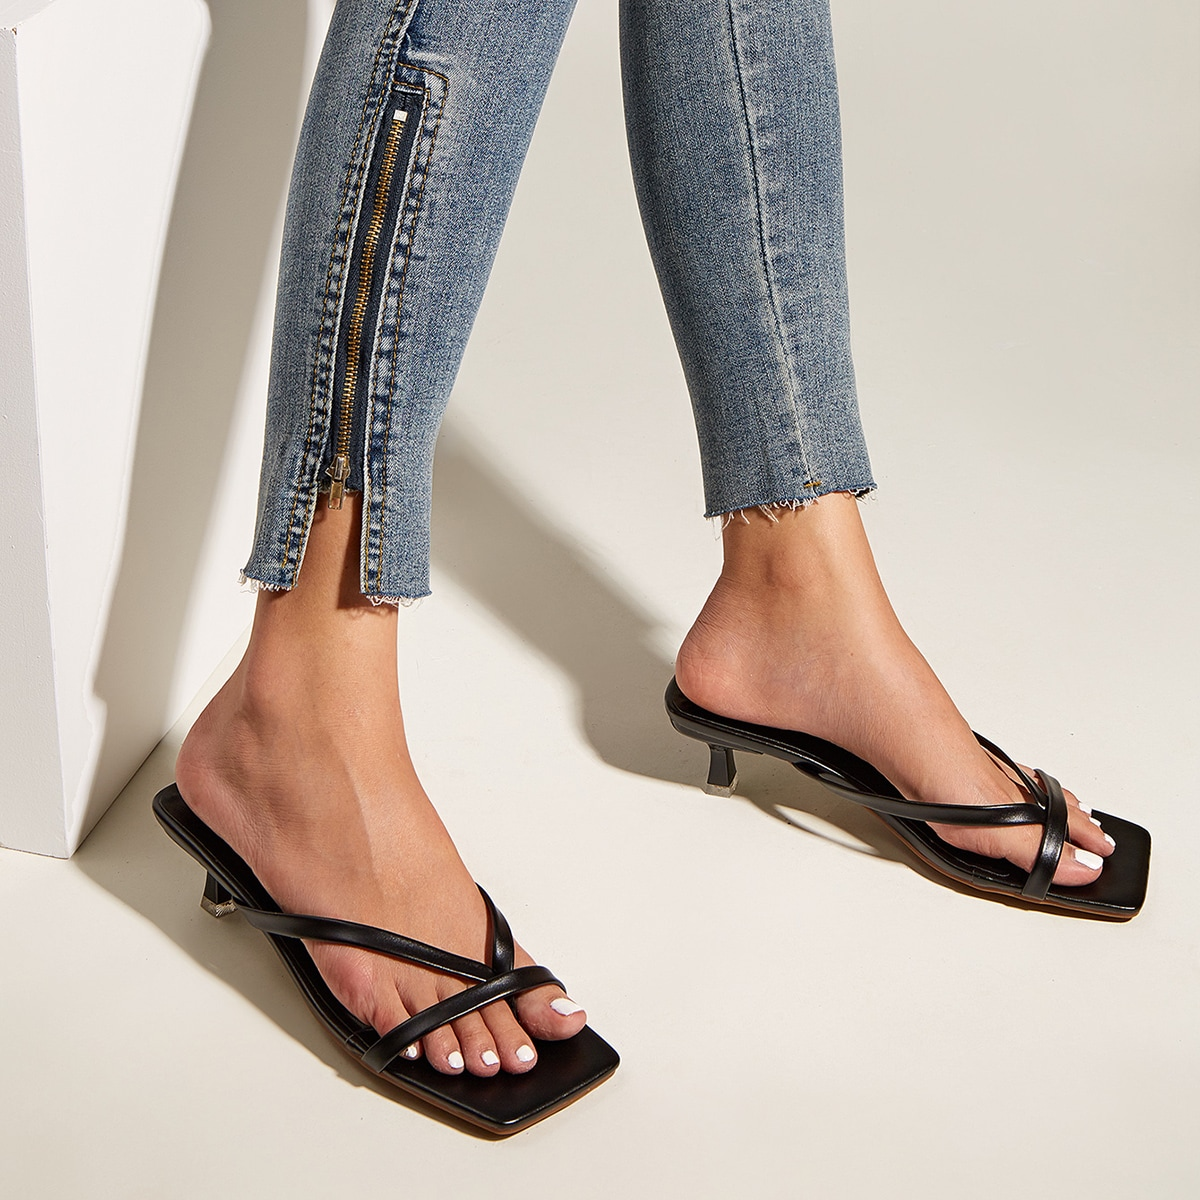 SHEIN / Minimalist Toe Post Kitten Heels Sandals